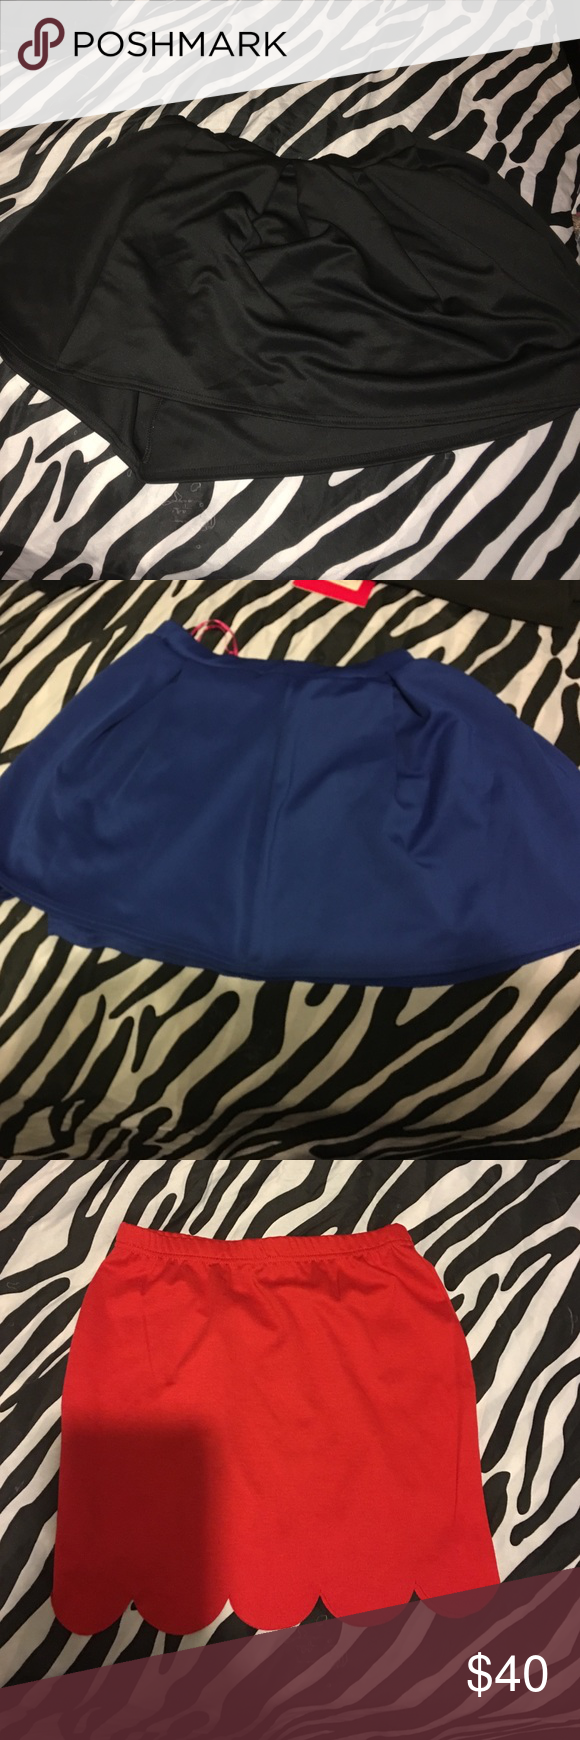 *BUNDLE DEAL*. 4 skirts 2 skater skirts (1black , 1blue) 2 mini skirts (1black, 1red) Skirts